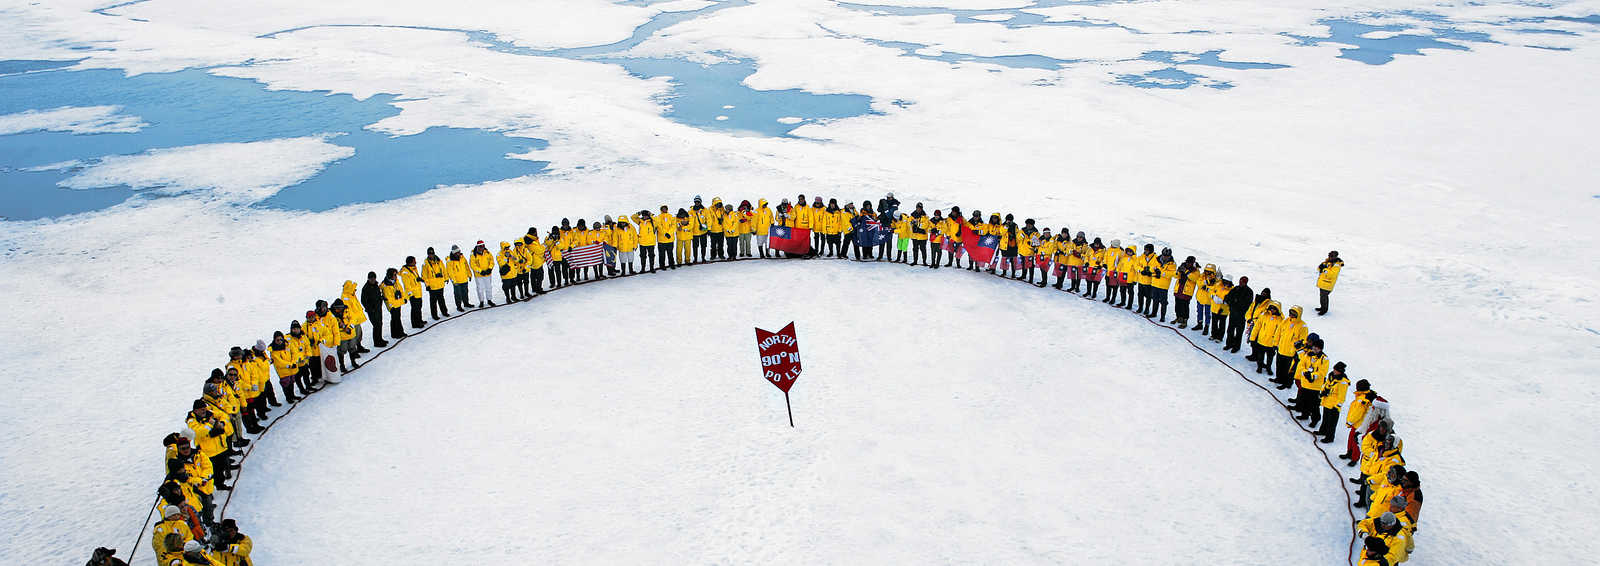 Human circle at the North Pole